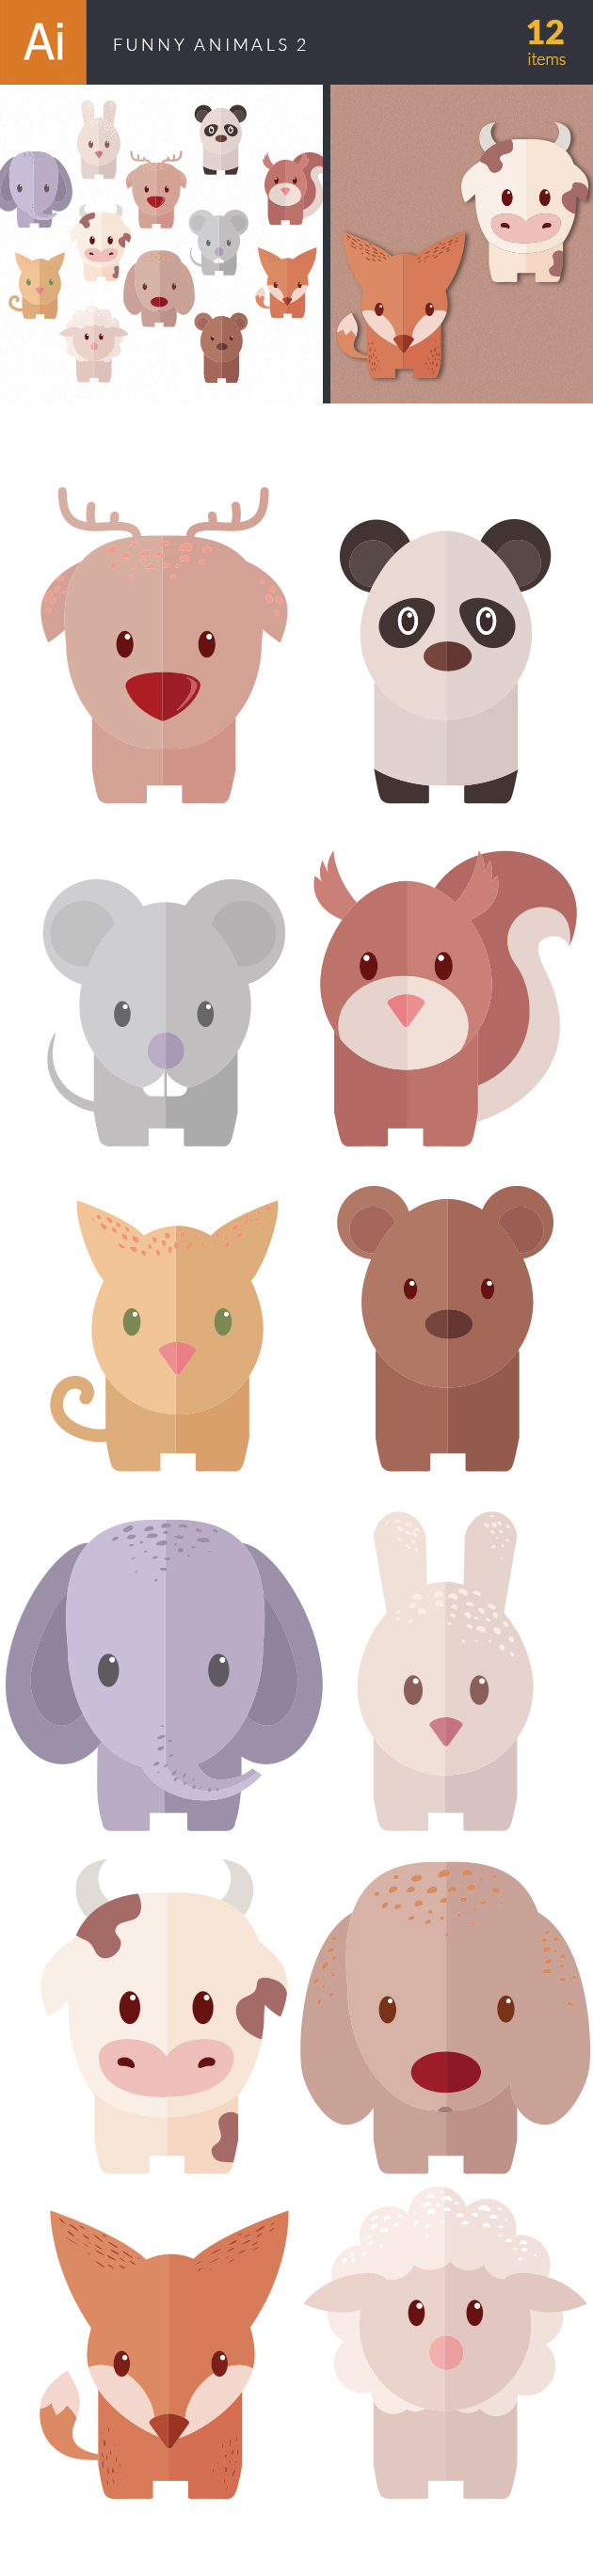 Funny Animals Vector Set 2 designtnt funny animals vector set 2 vector large